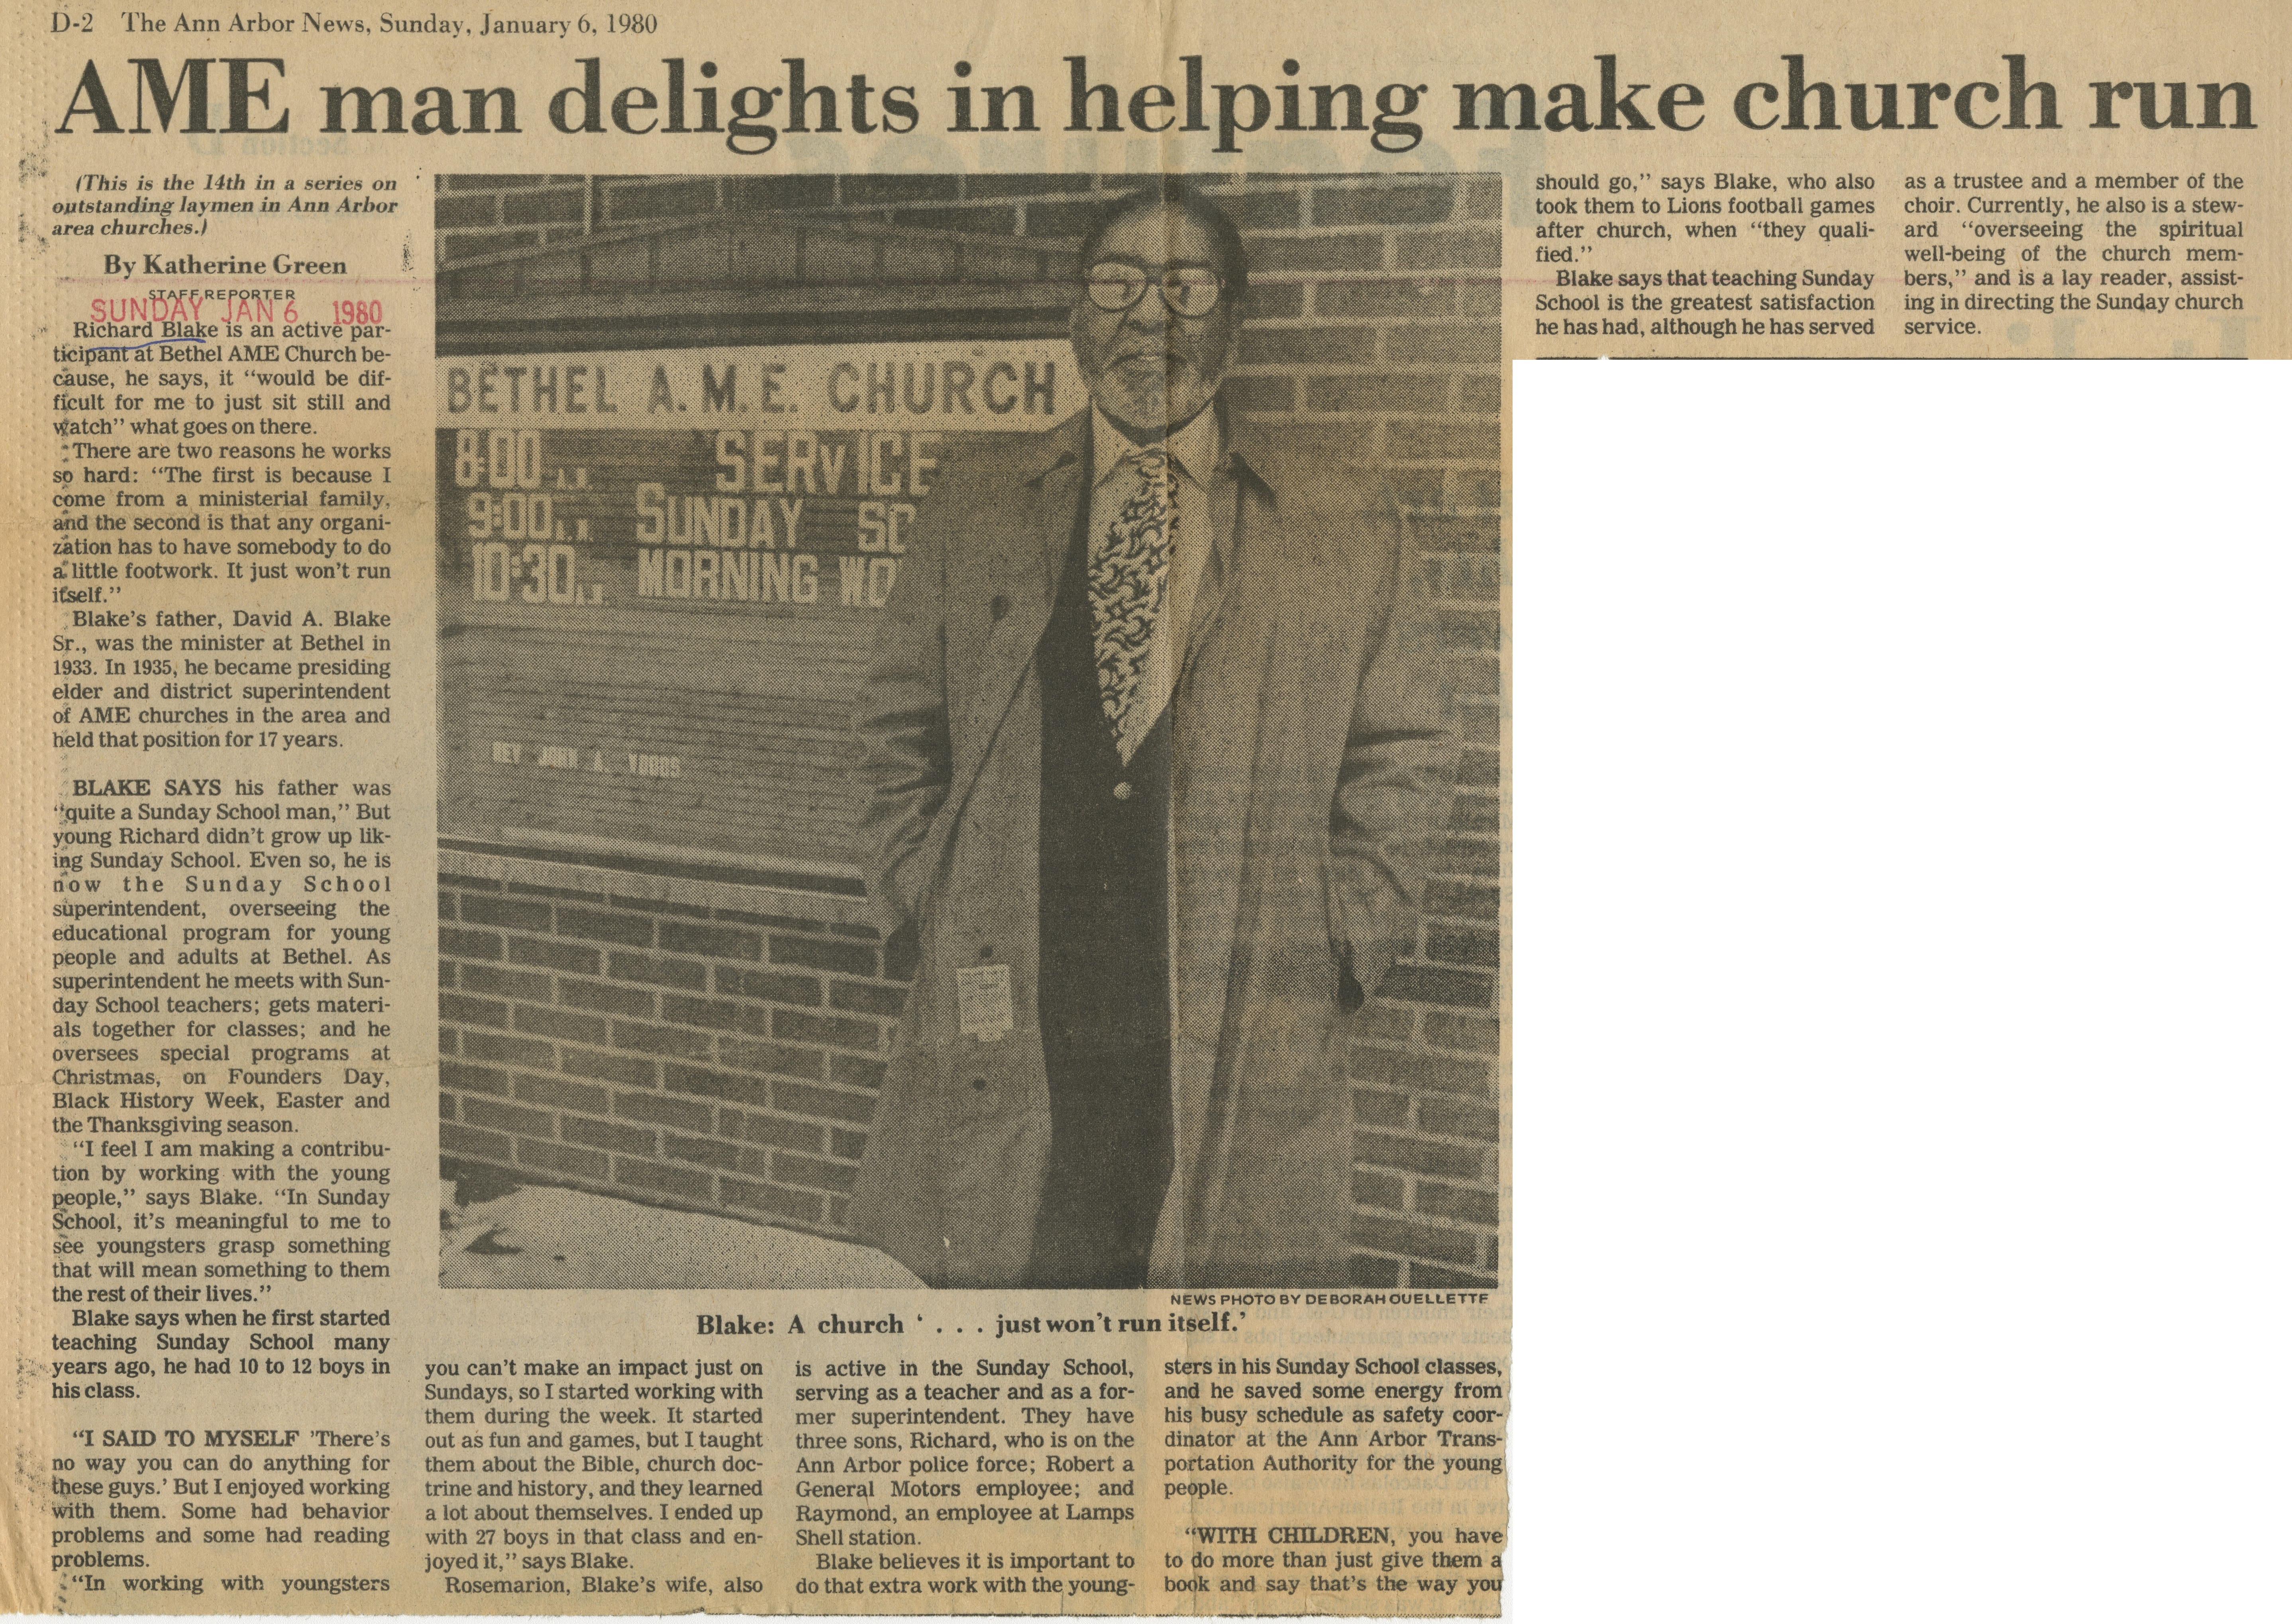 AME man delights in helping make church run image